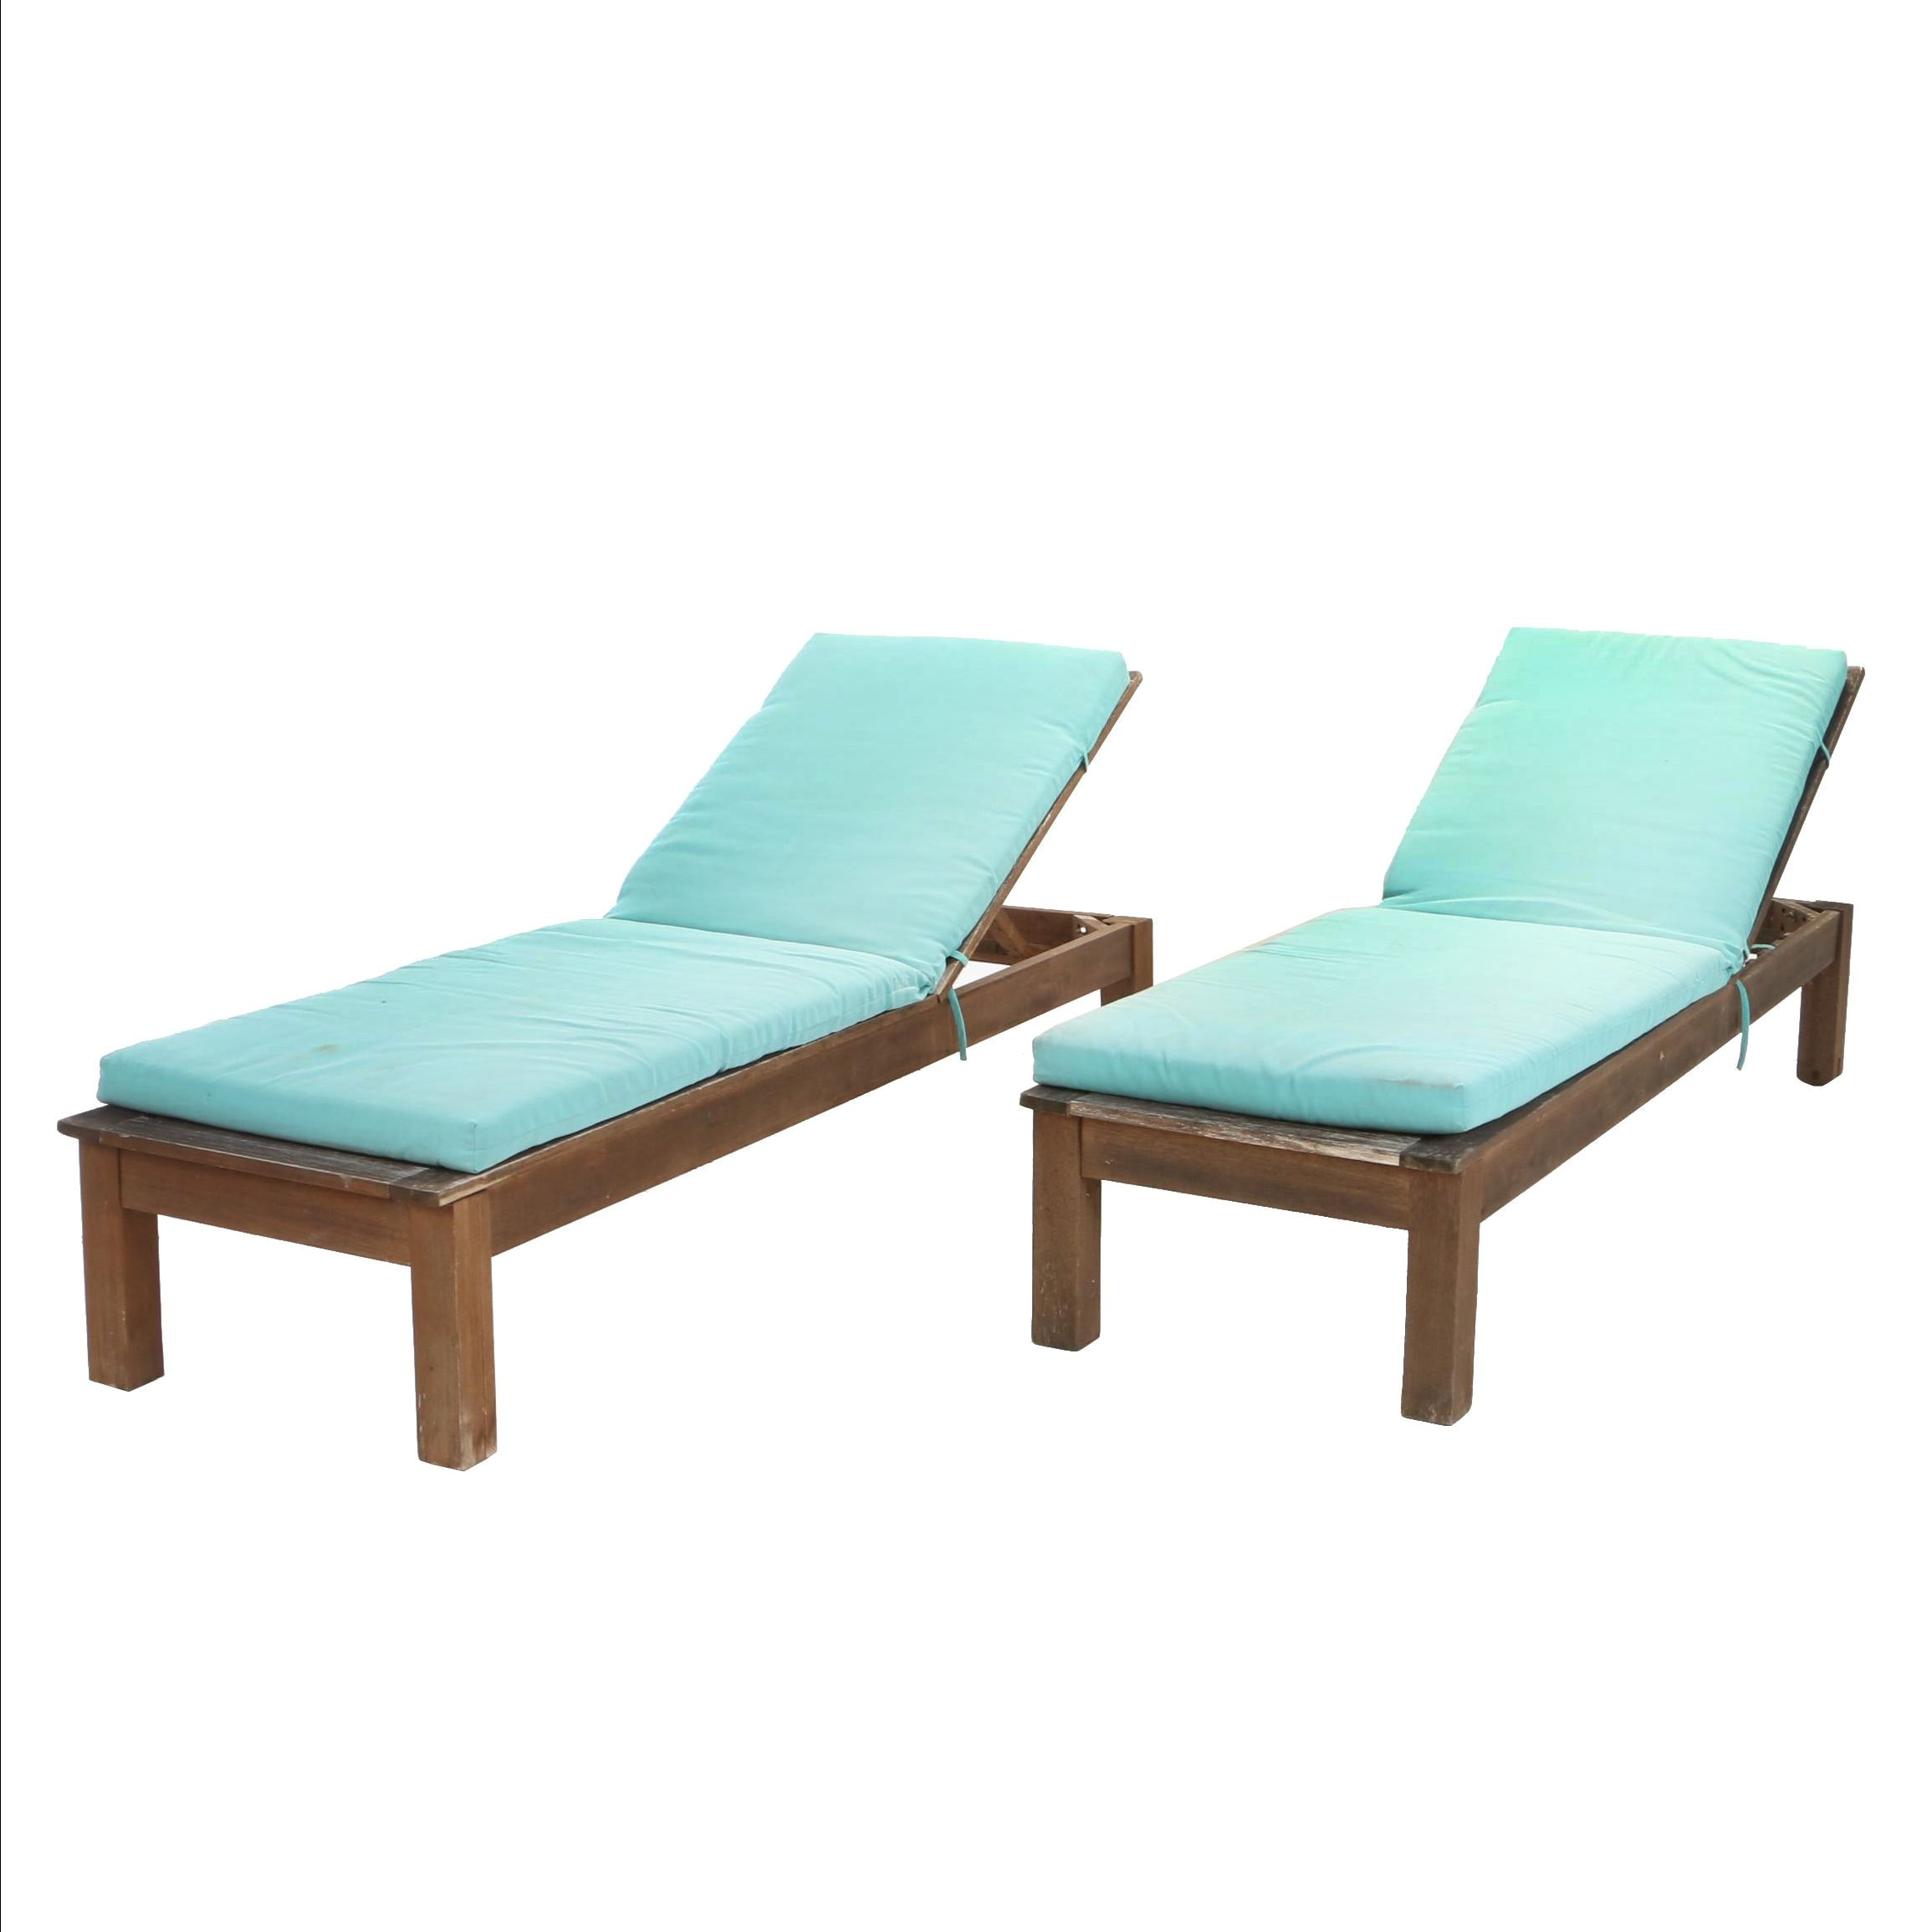 Pair of Contemporary Hardwood Patio Chaise Lounges by World Market